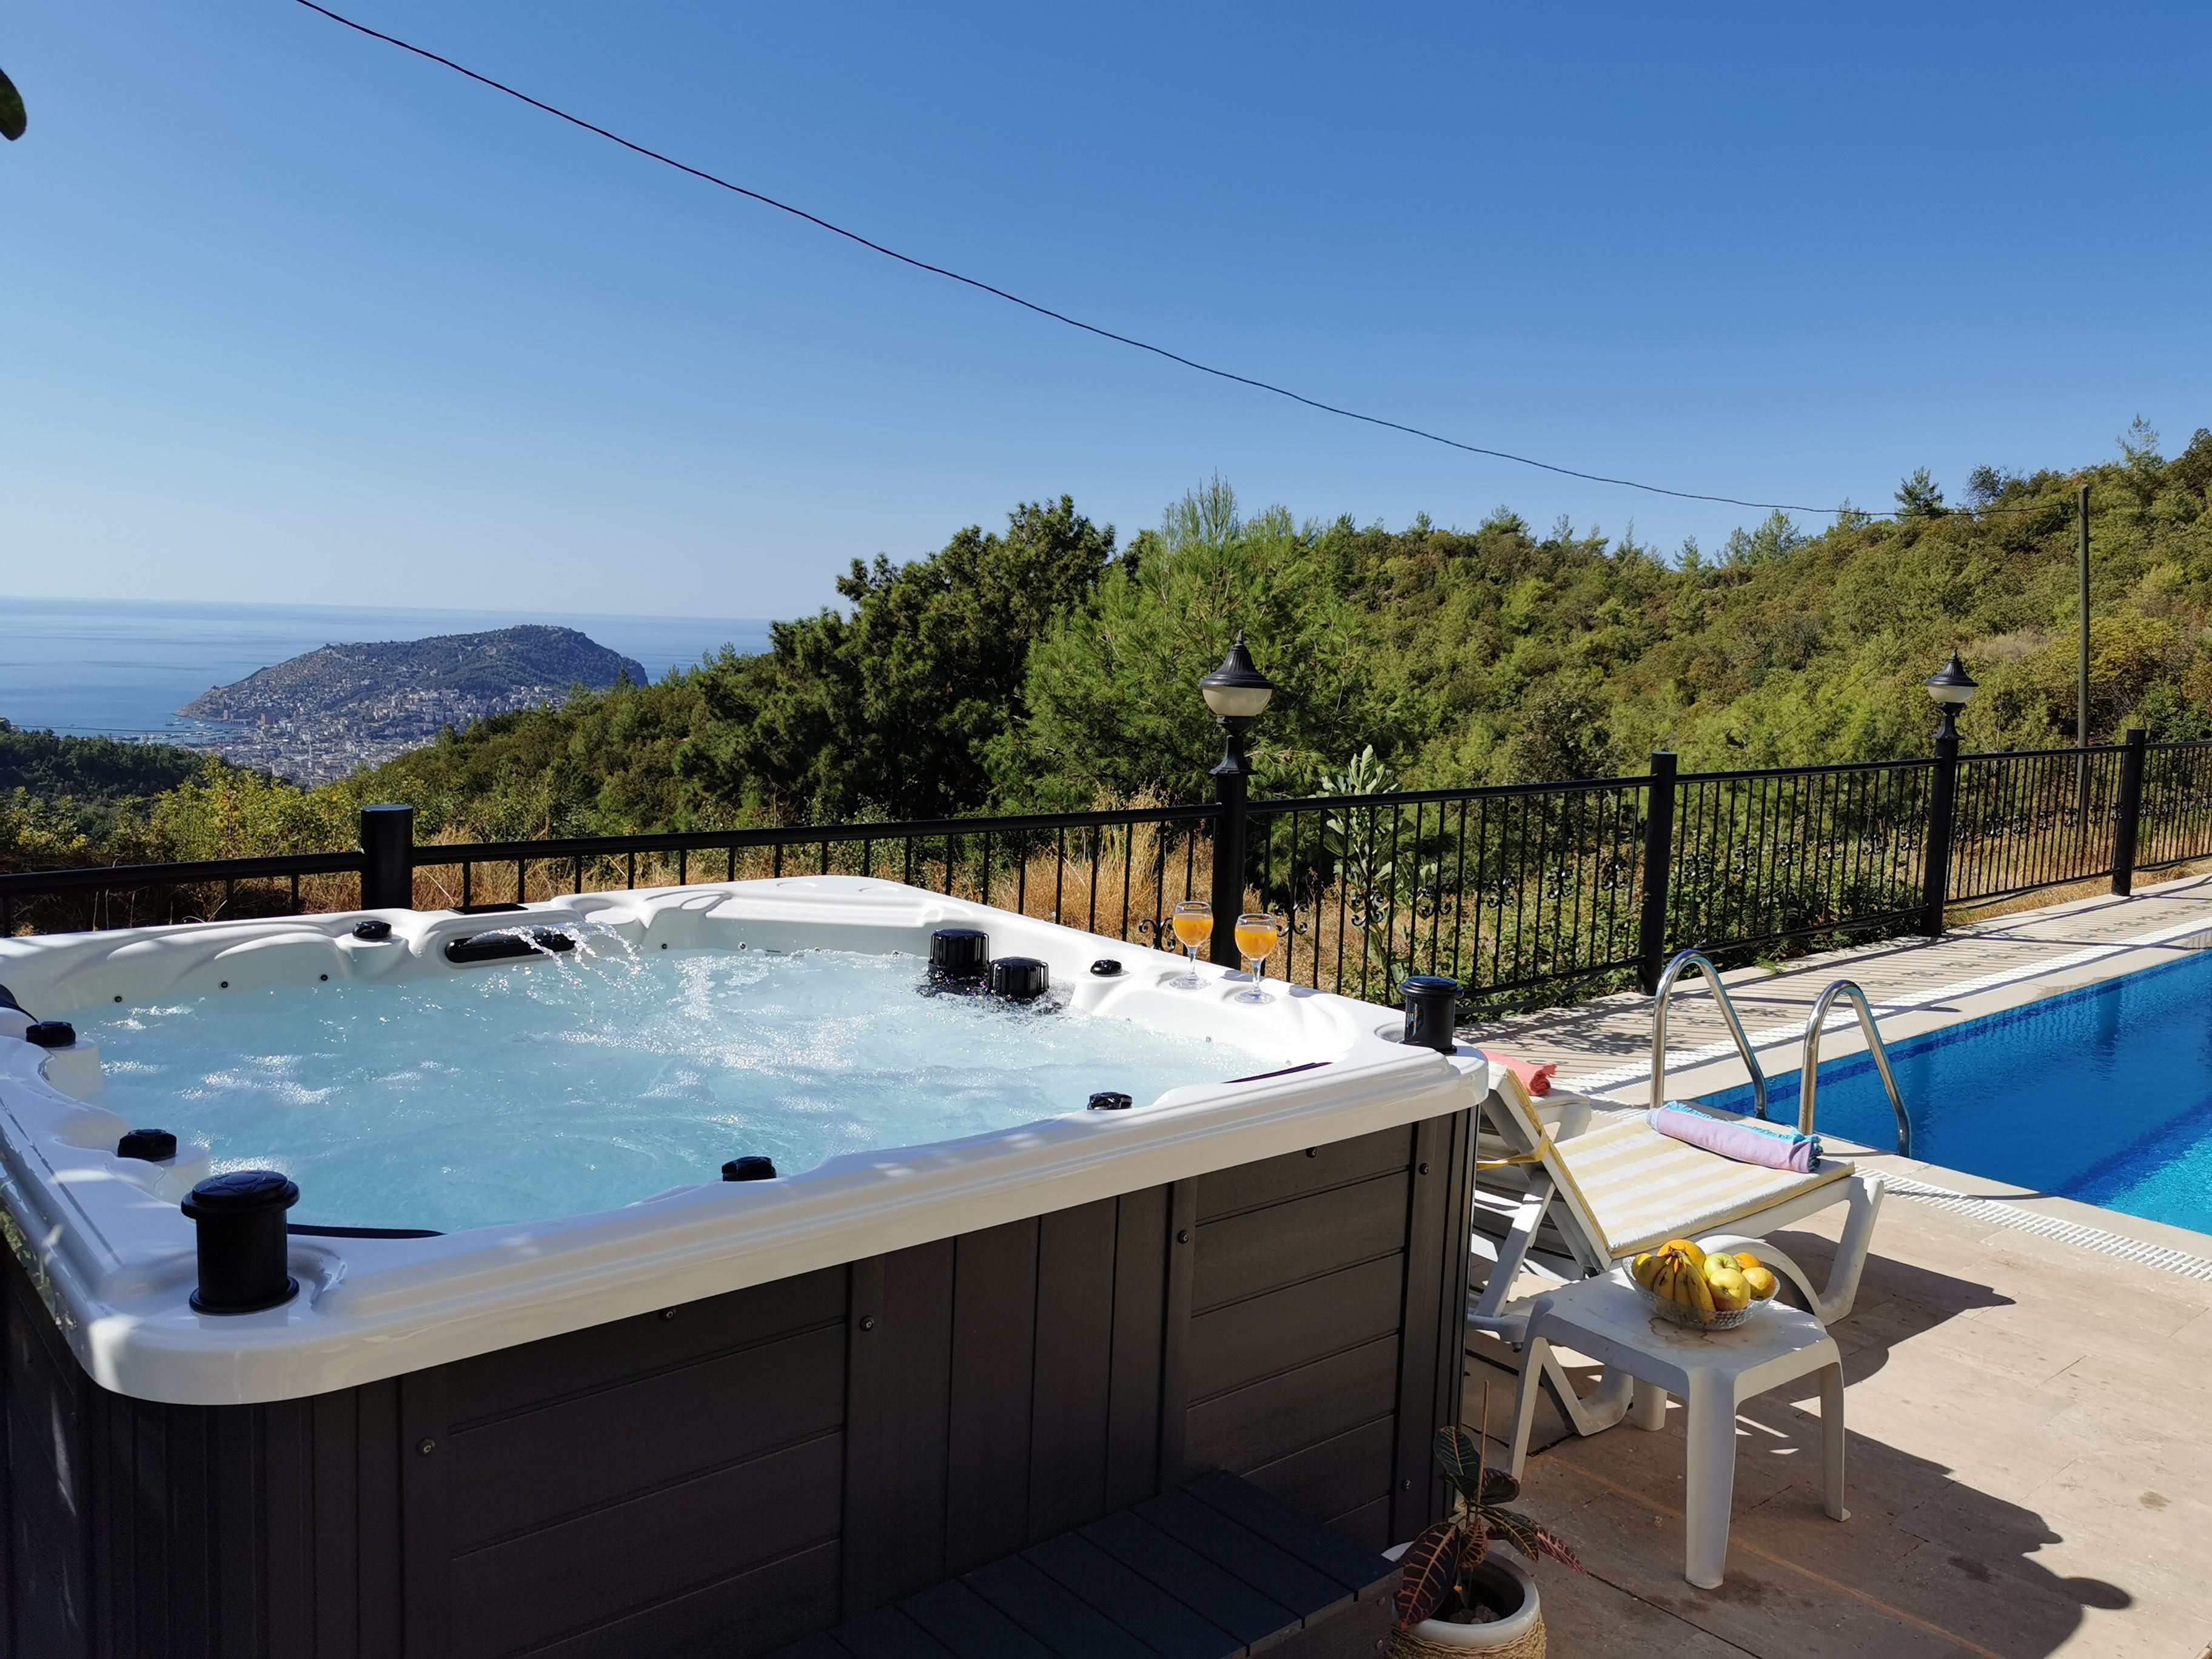 Relax in your jacuzzi and enjoy the view